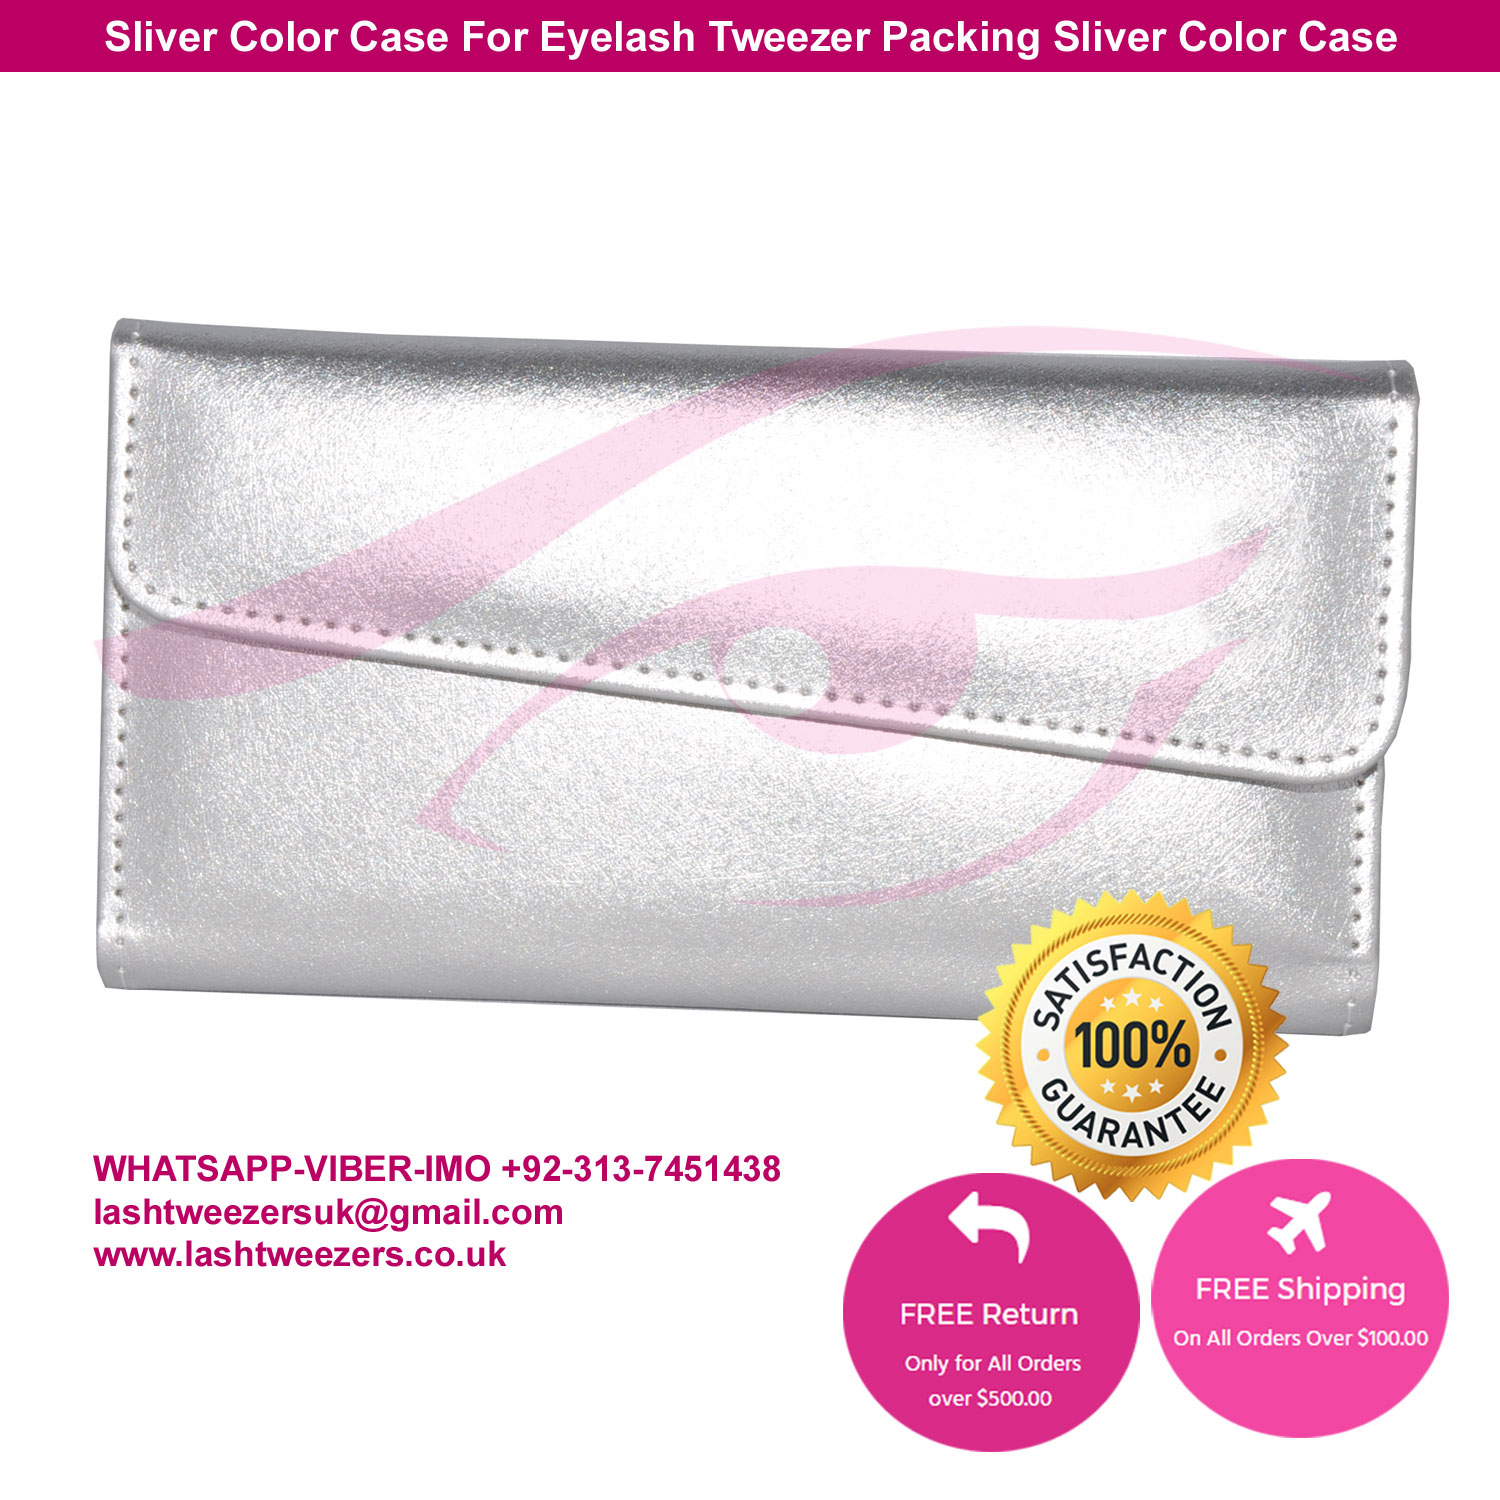 Sliver Color Case For Eyelash Tweezer Packing Sliver Color Case